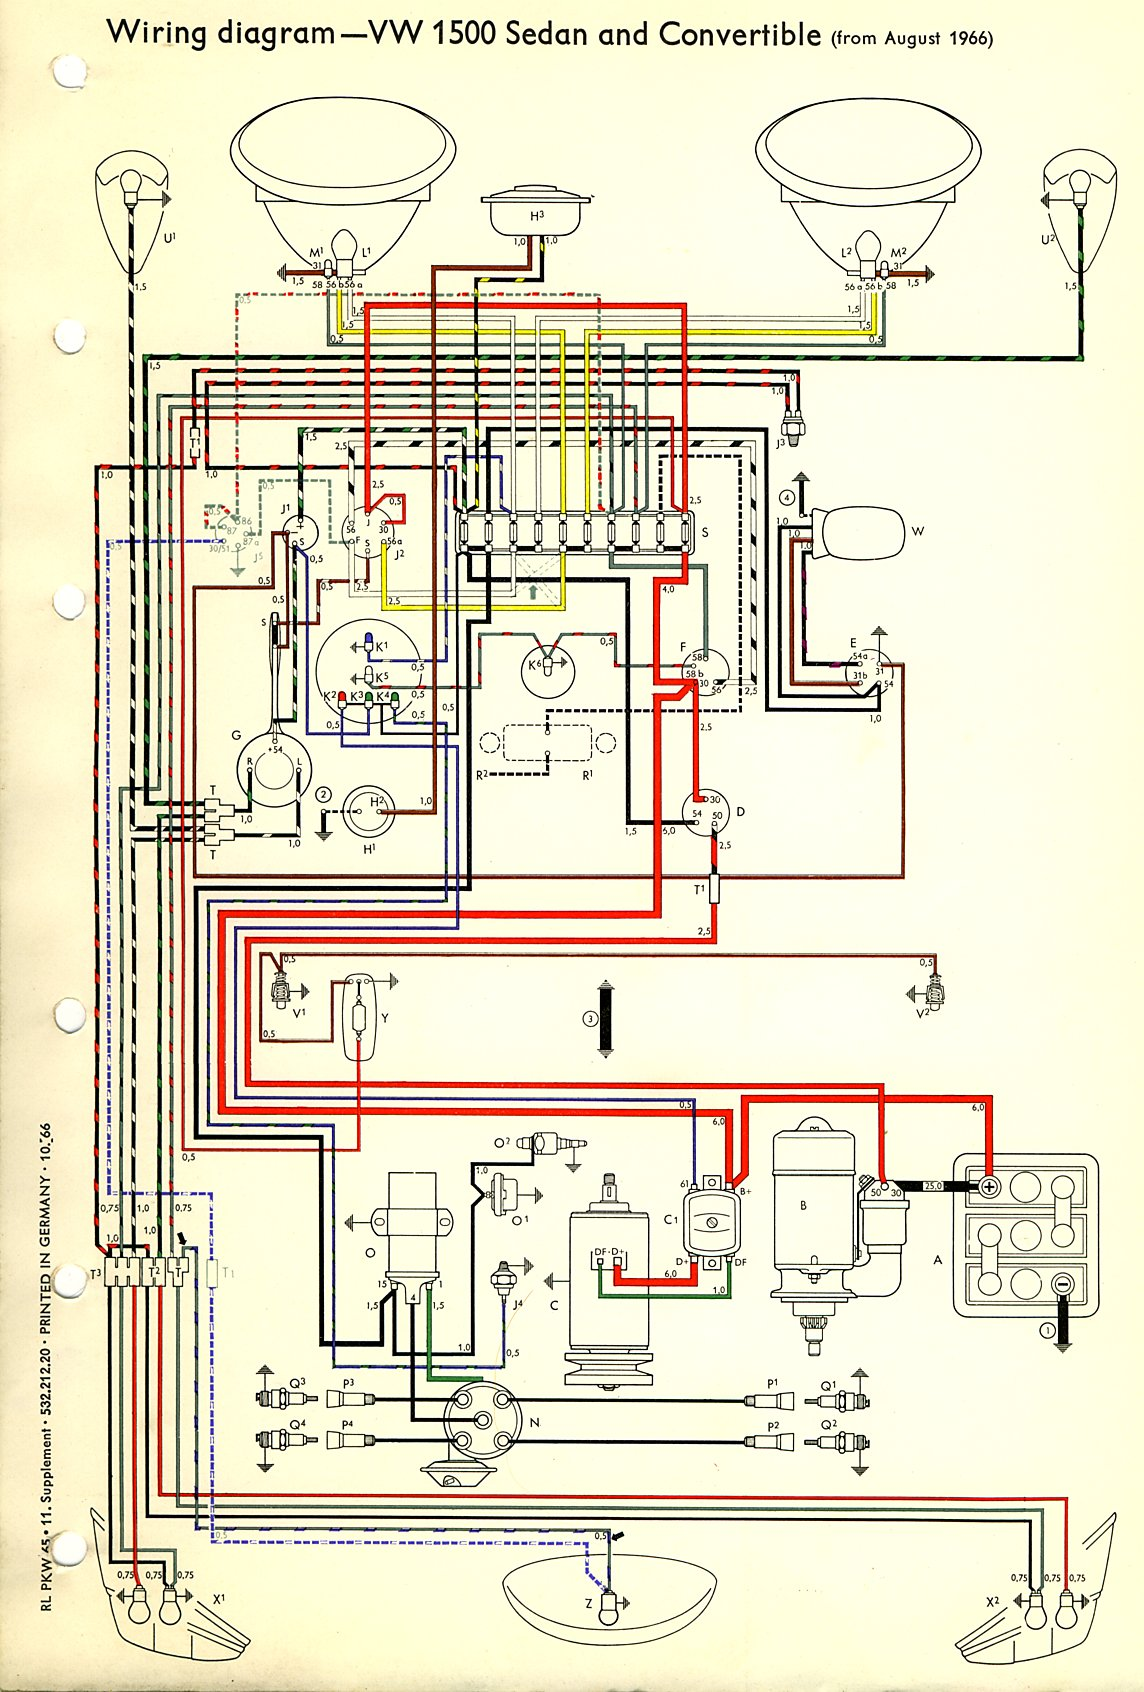 74 beetle wiring diagram full version hd quality wiring diagram -  snow.yti.fr  yti.fr